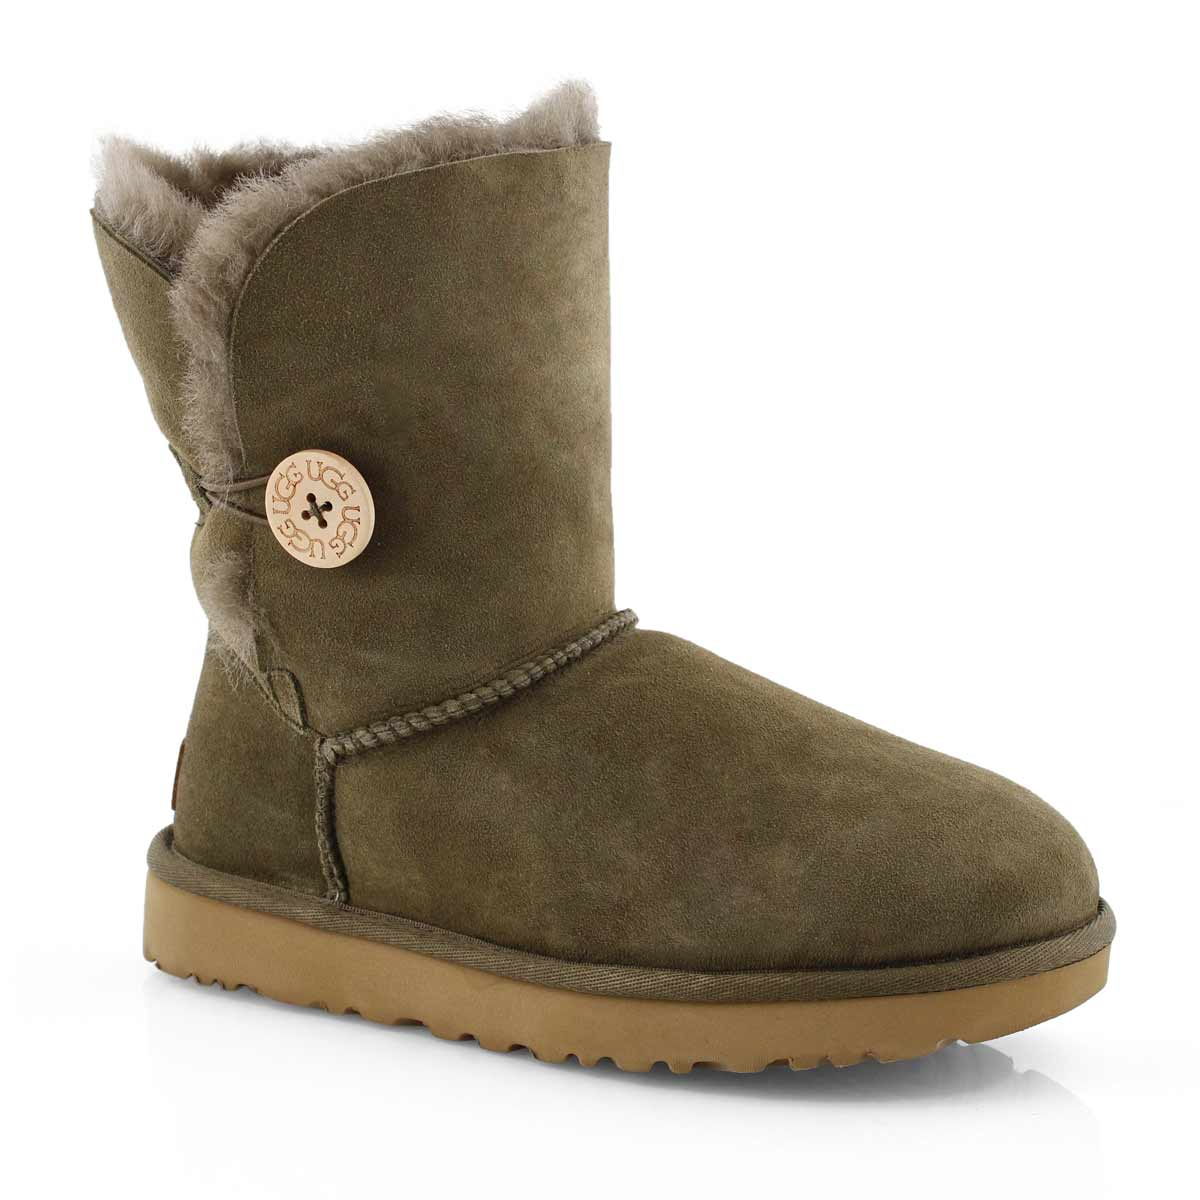 Lds Bailey Button II euca sheepskin boot